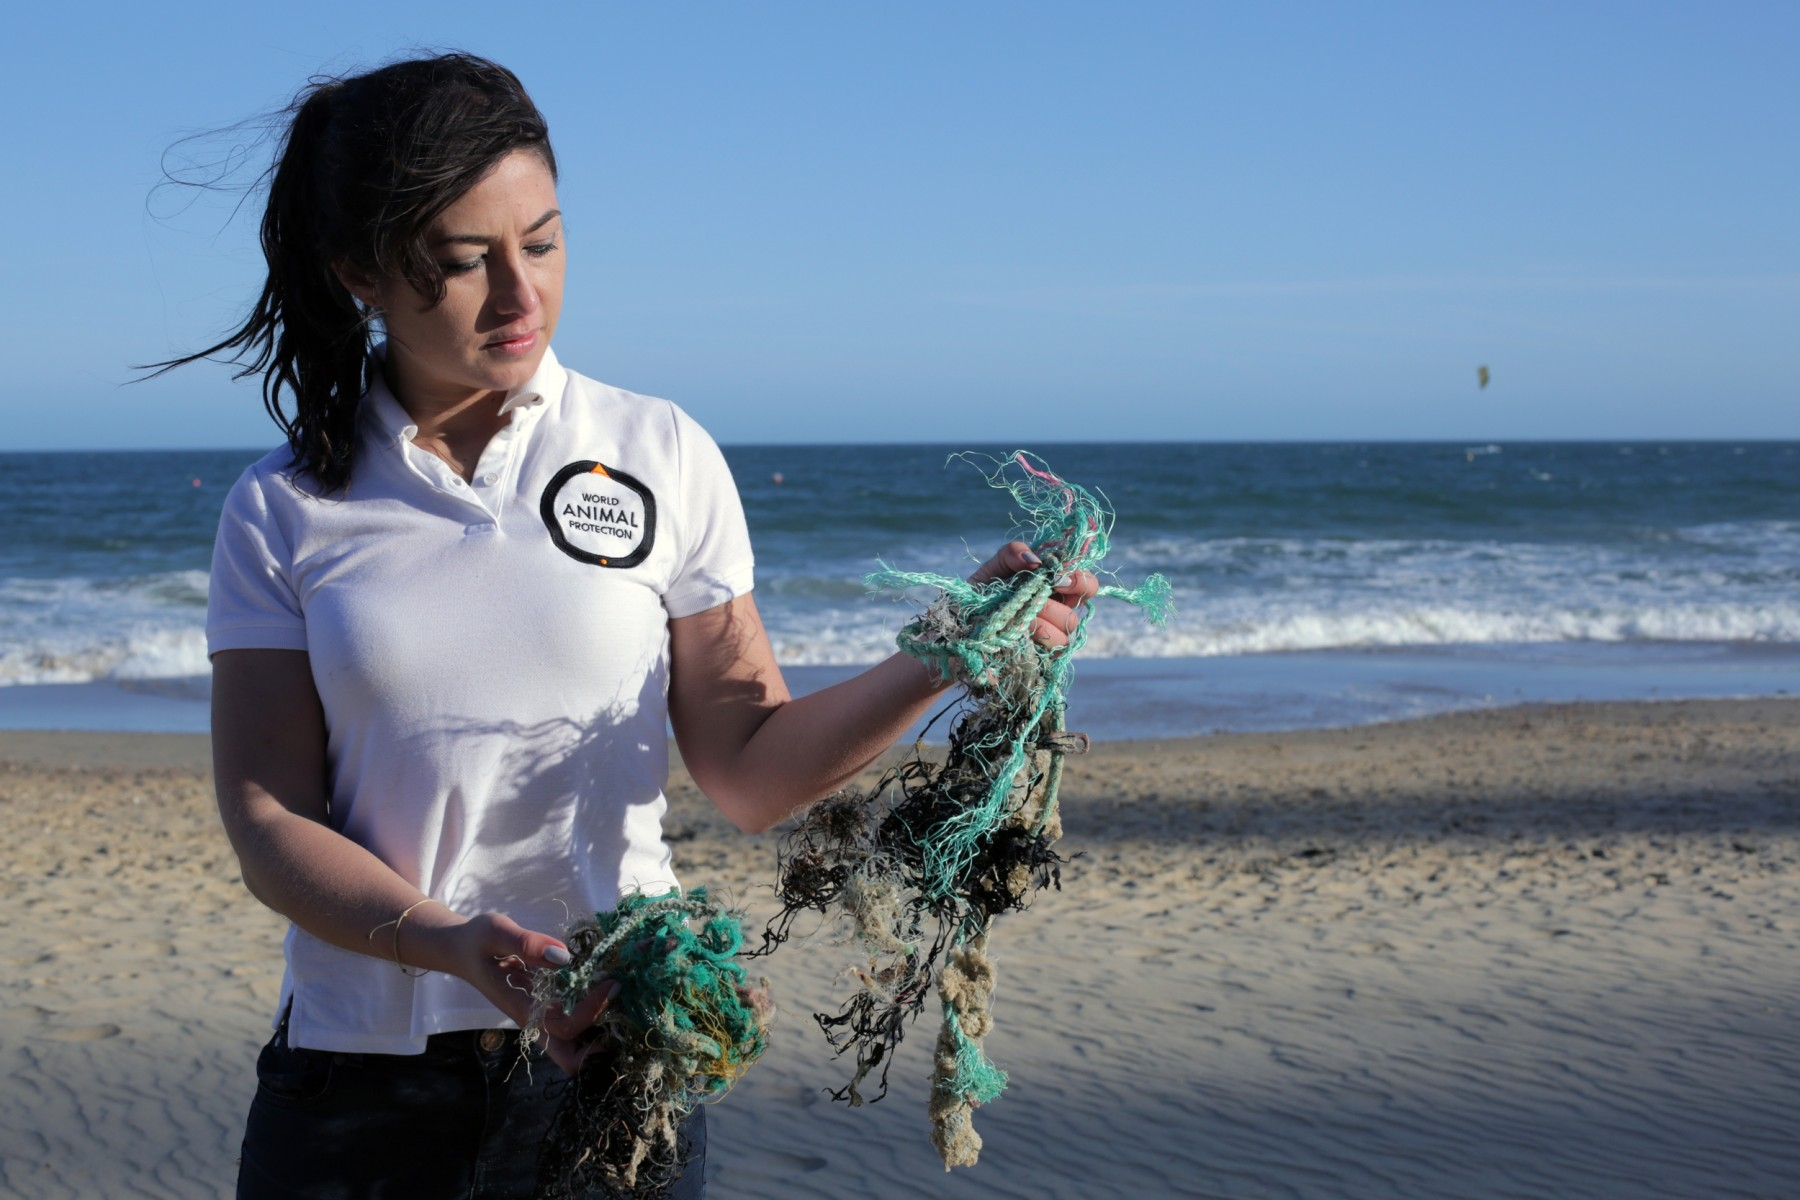 Joanna Toole holding ghost gear on a beach - World Animal Protection - Animals in the wild